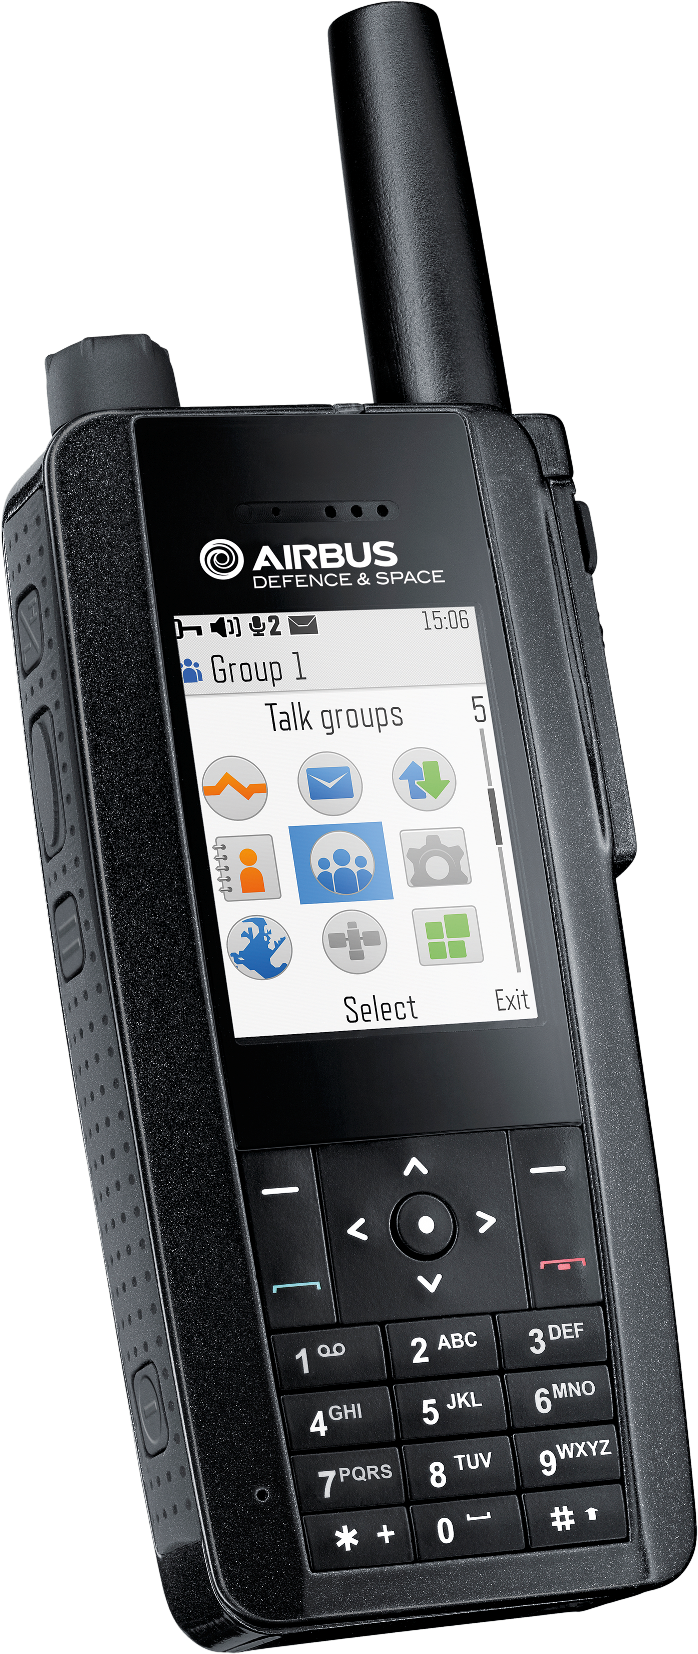 Airbus Ds Th1n Png Png Image 698 1654 Pixels Scaled 56